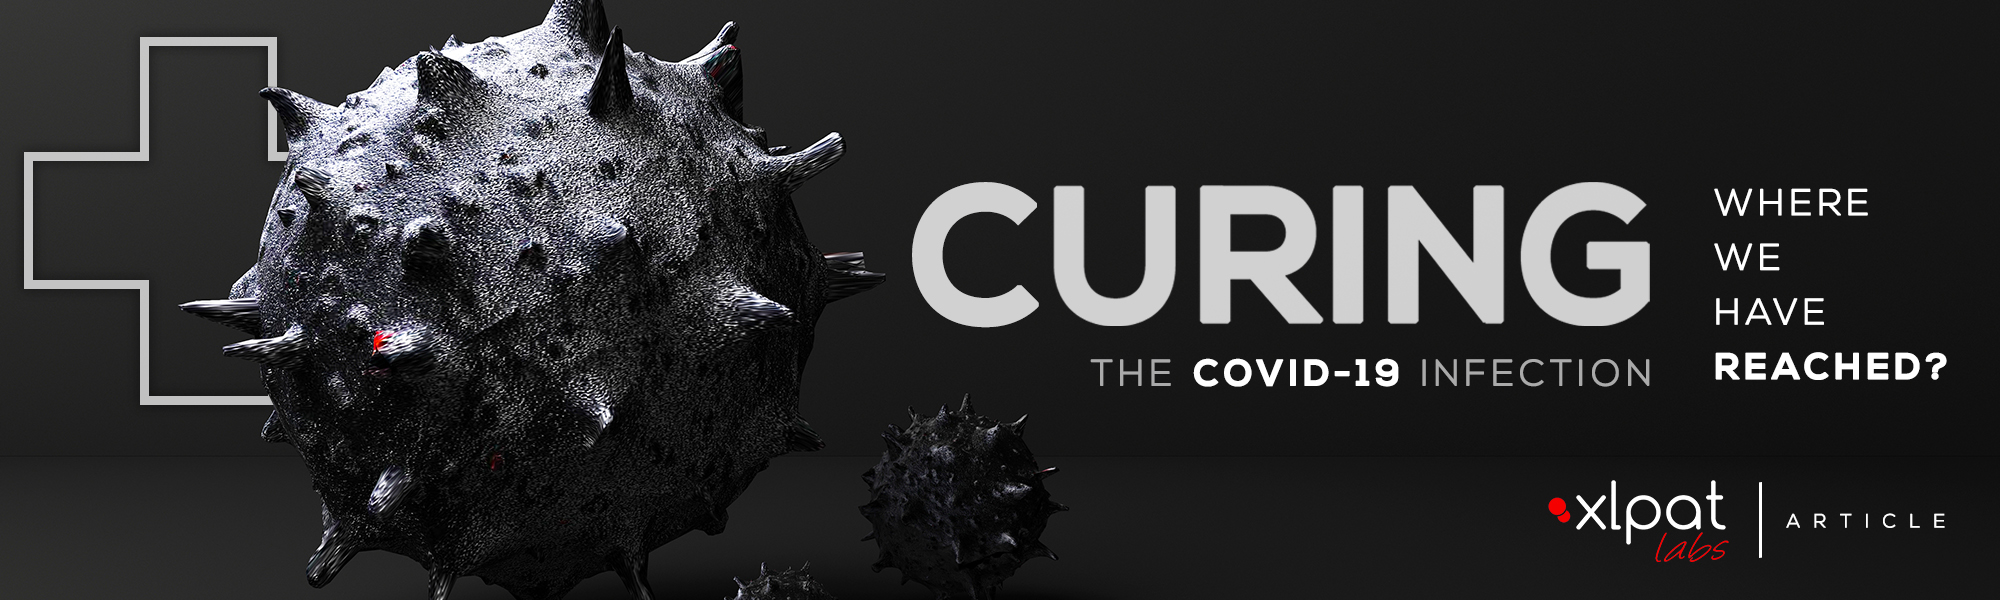 Curing the COVID-19 Infection